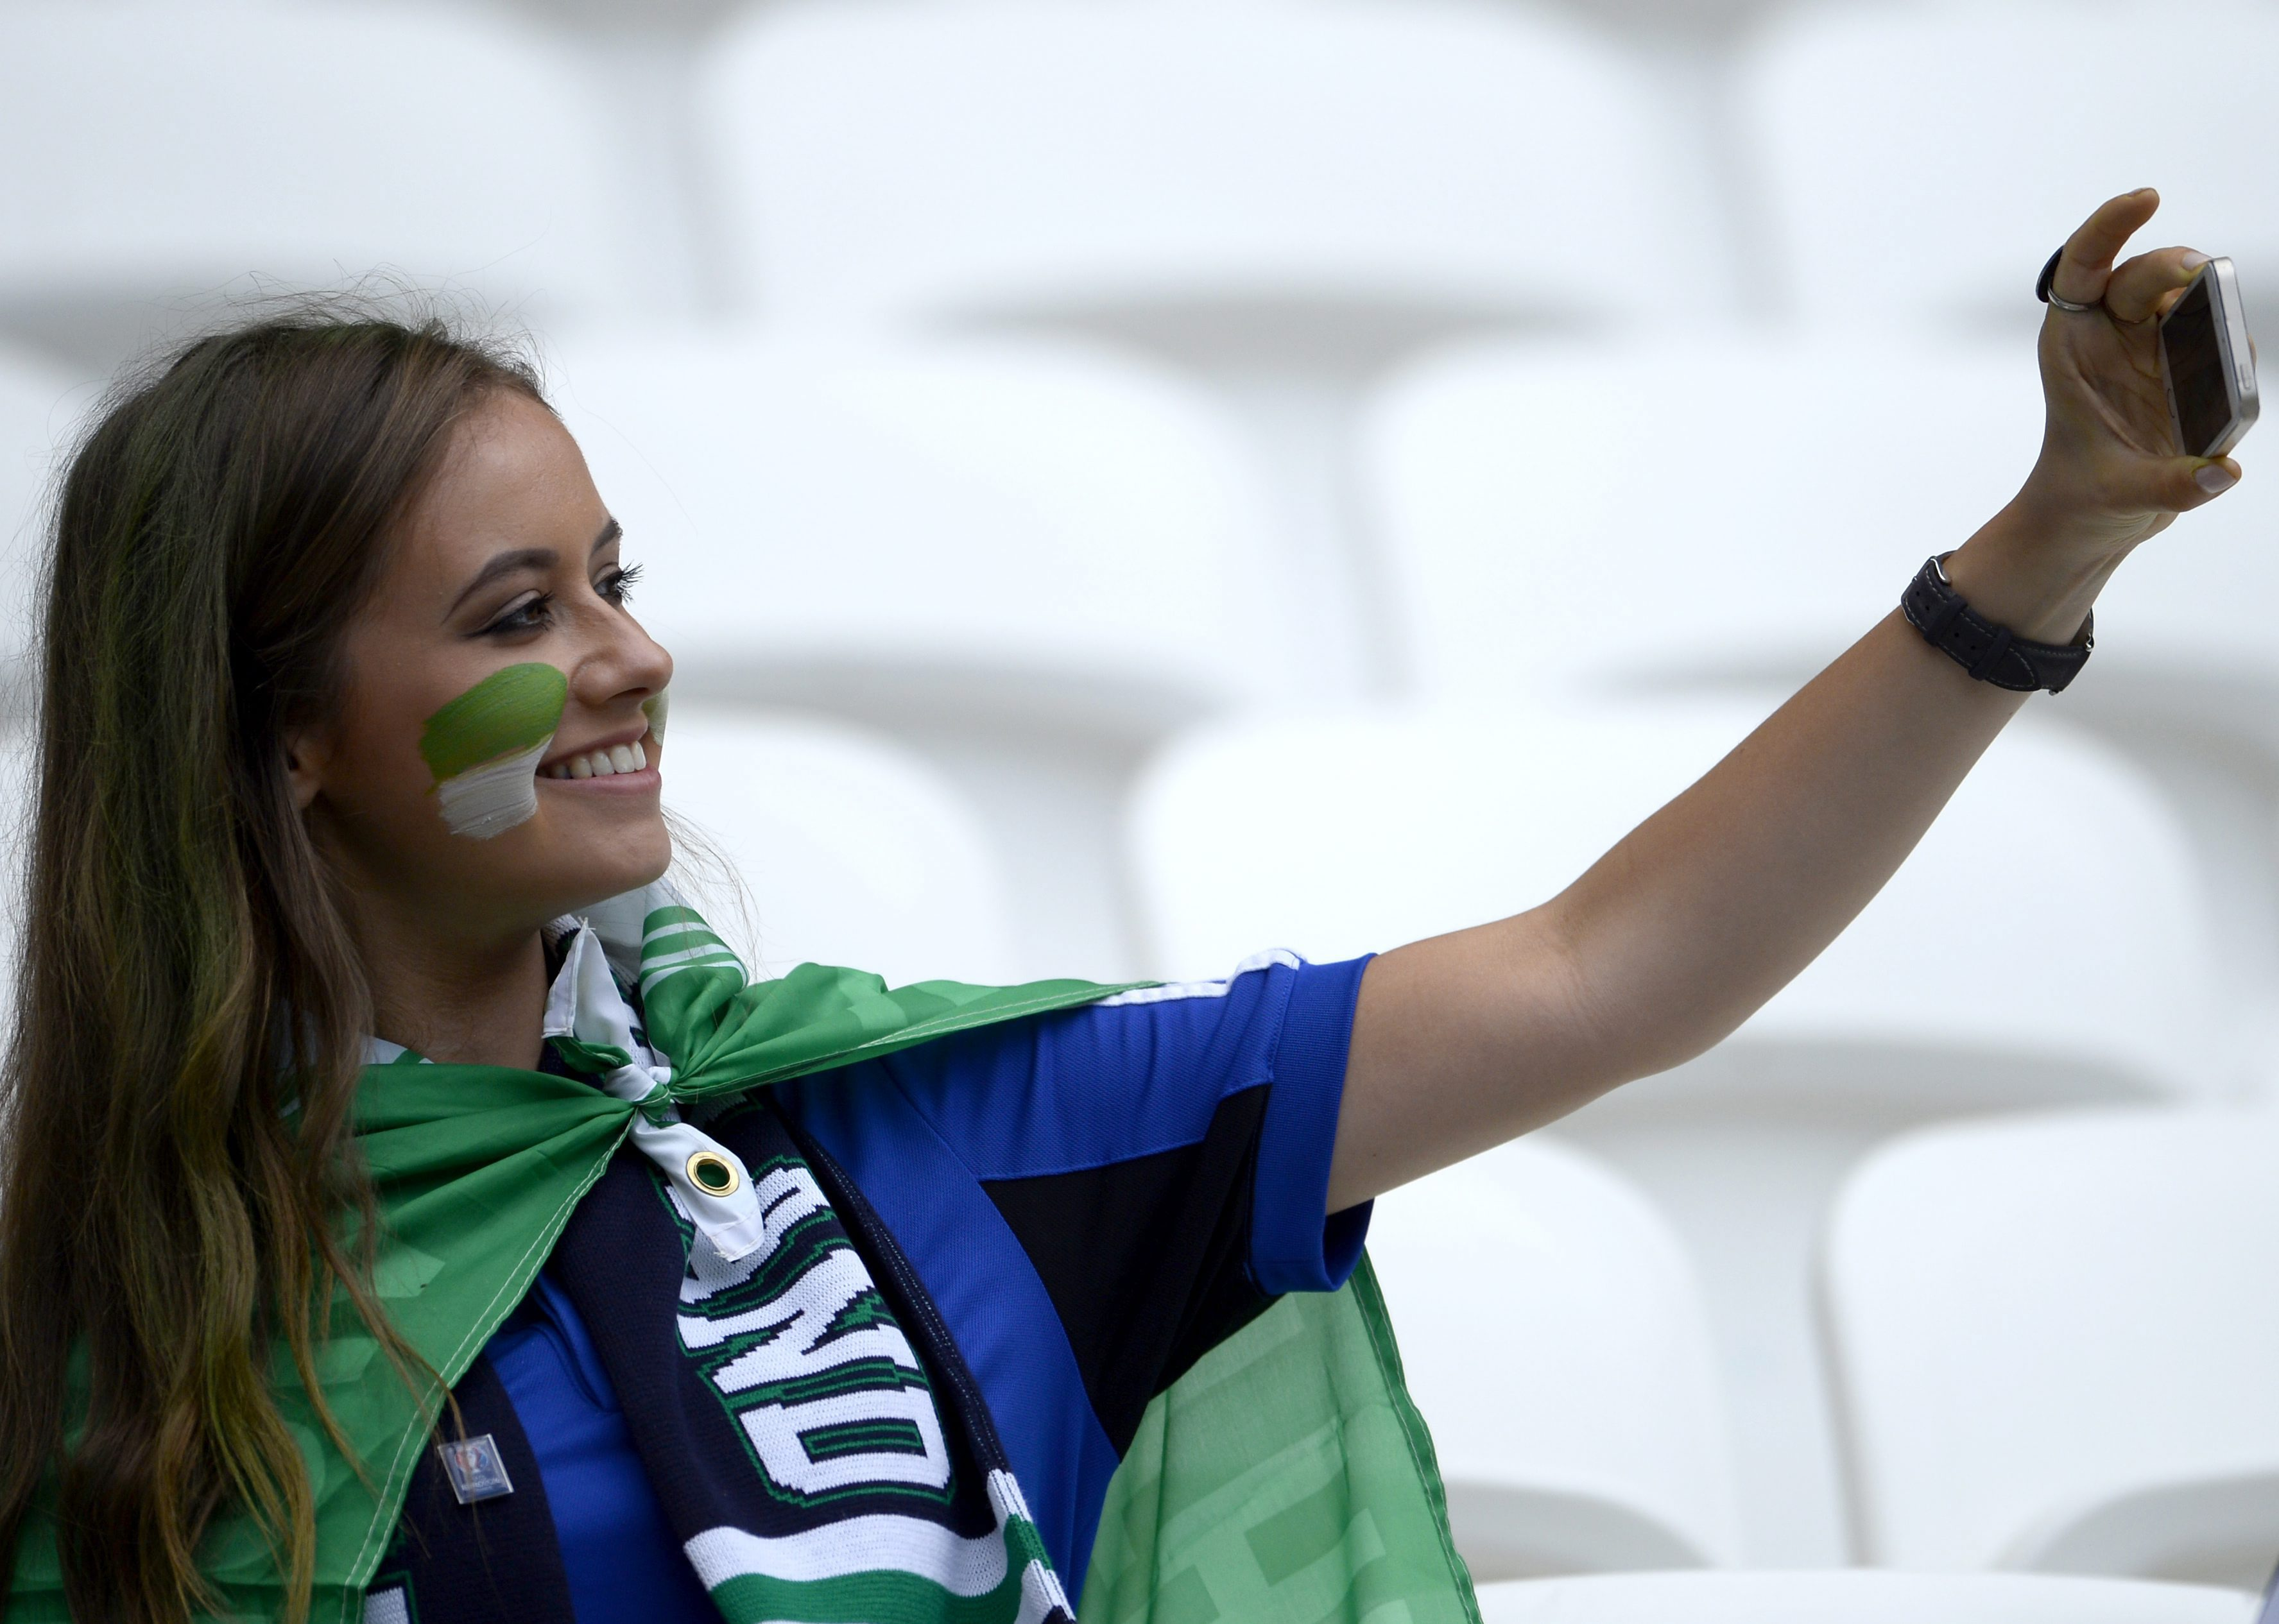 . Lyon (France), 16/06/2016.- A Northern Ireland supporter takes a selfie before the UEFA EURO 2016 group C preliminary round match between Ukraine and Northern Ireland at Stade de Lyon in Lyon, France, 16 June 2016. (RESTRICTIONS APPLY: For editorial news reporting purposes only. Not used for commercial or marketing purposes without prior written approval of UEFA. Images must appear as still images and must not emulate match action video footage. Photographs published in online publications (whether via the Internet or otherwise) shall have an interval of at least 20 seconds between the posting.) (Francia, Irlanda, Ucrania) EFE/EPA/CJ GUNTHER EDITORIAL USE ONLY